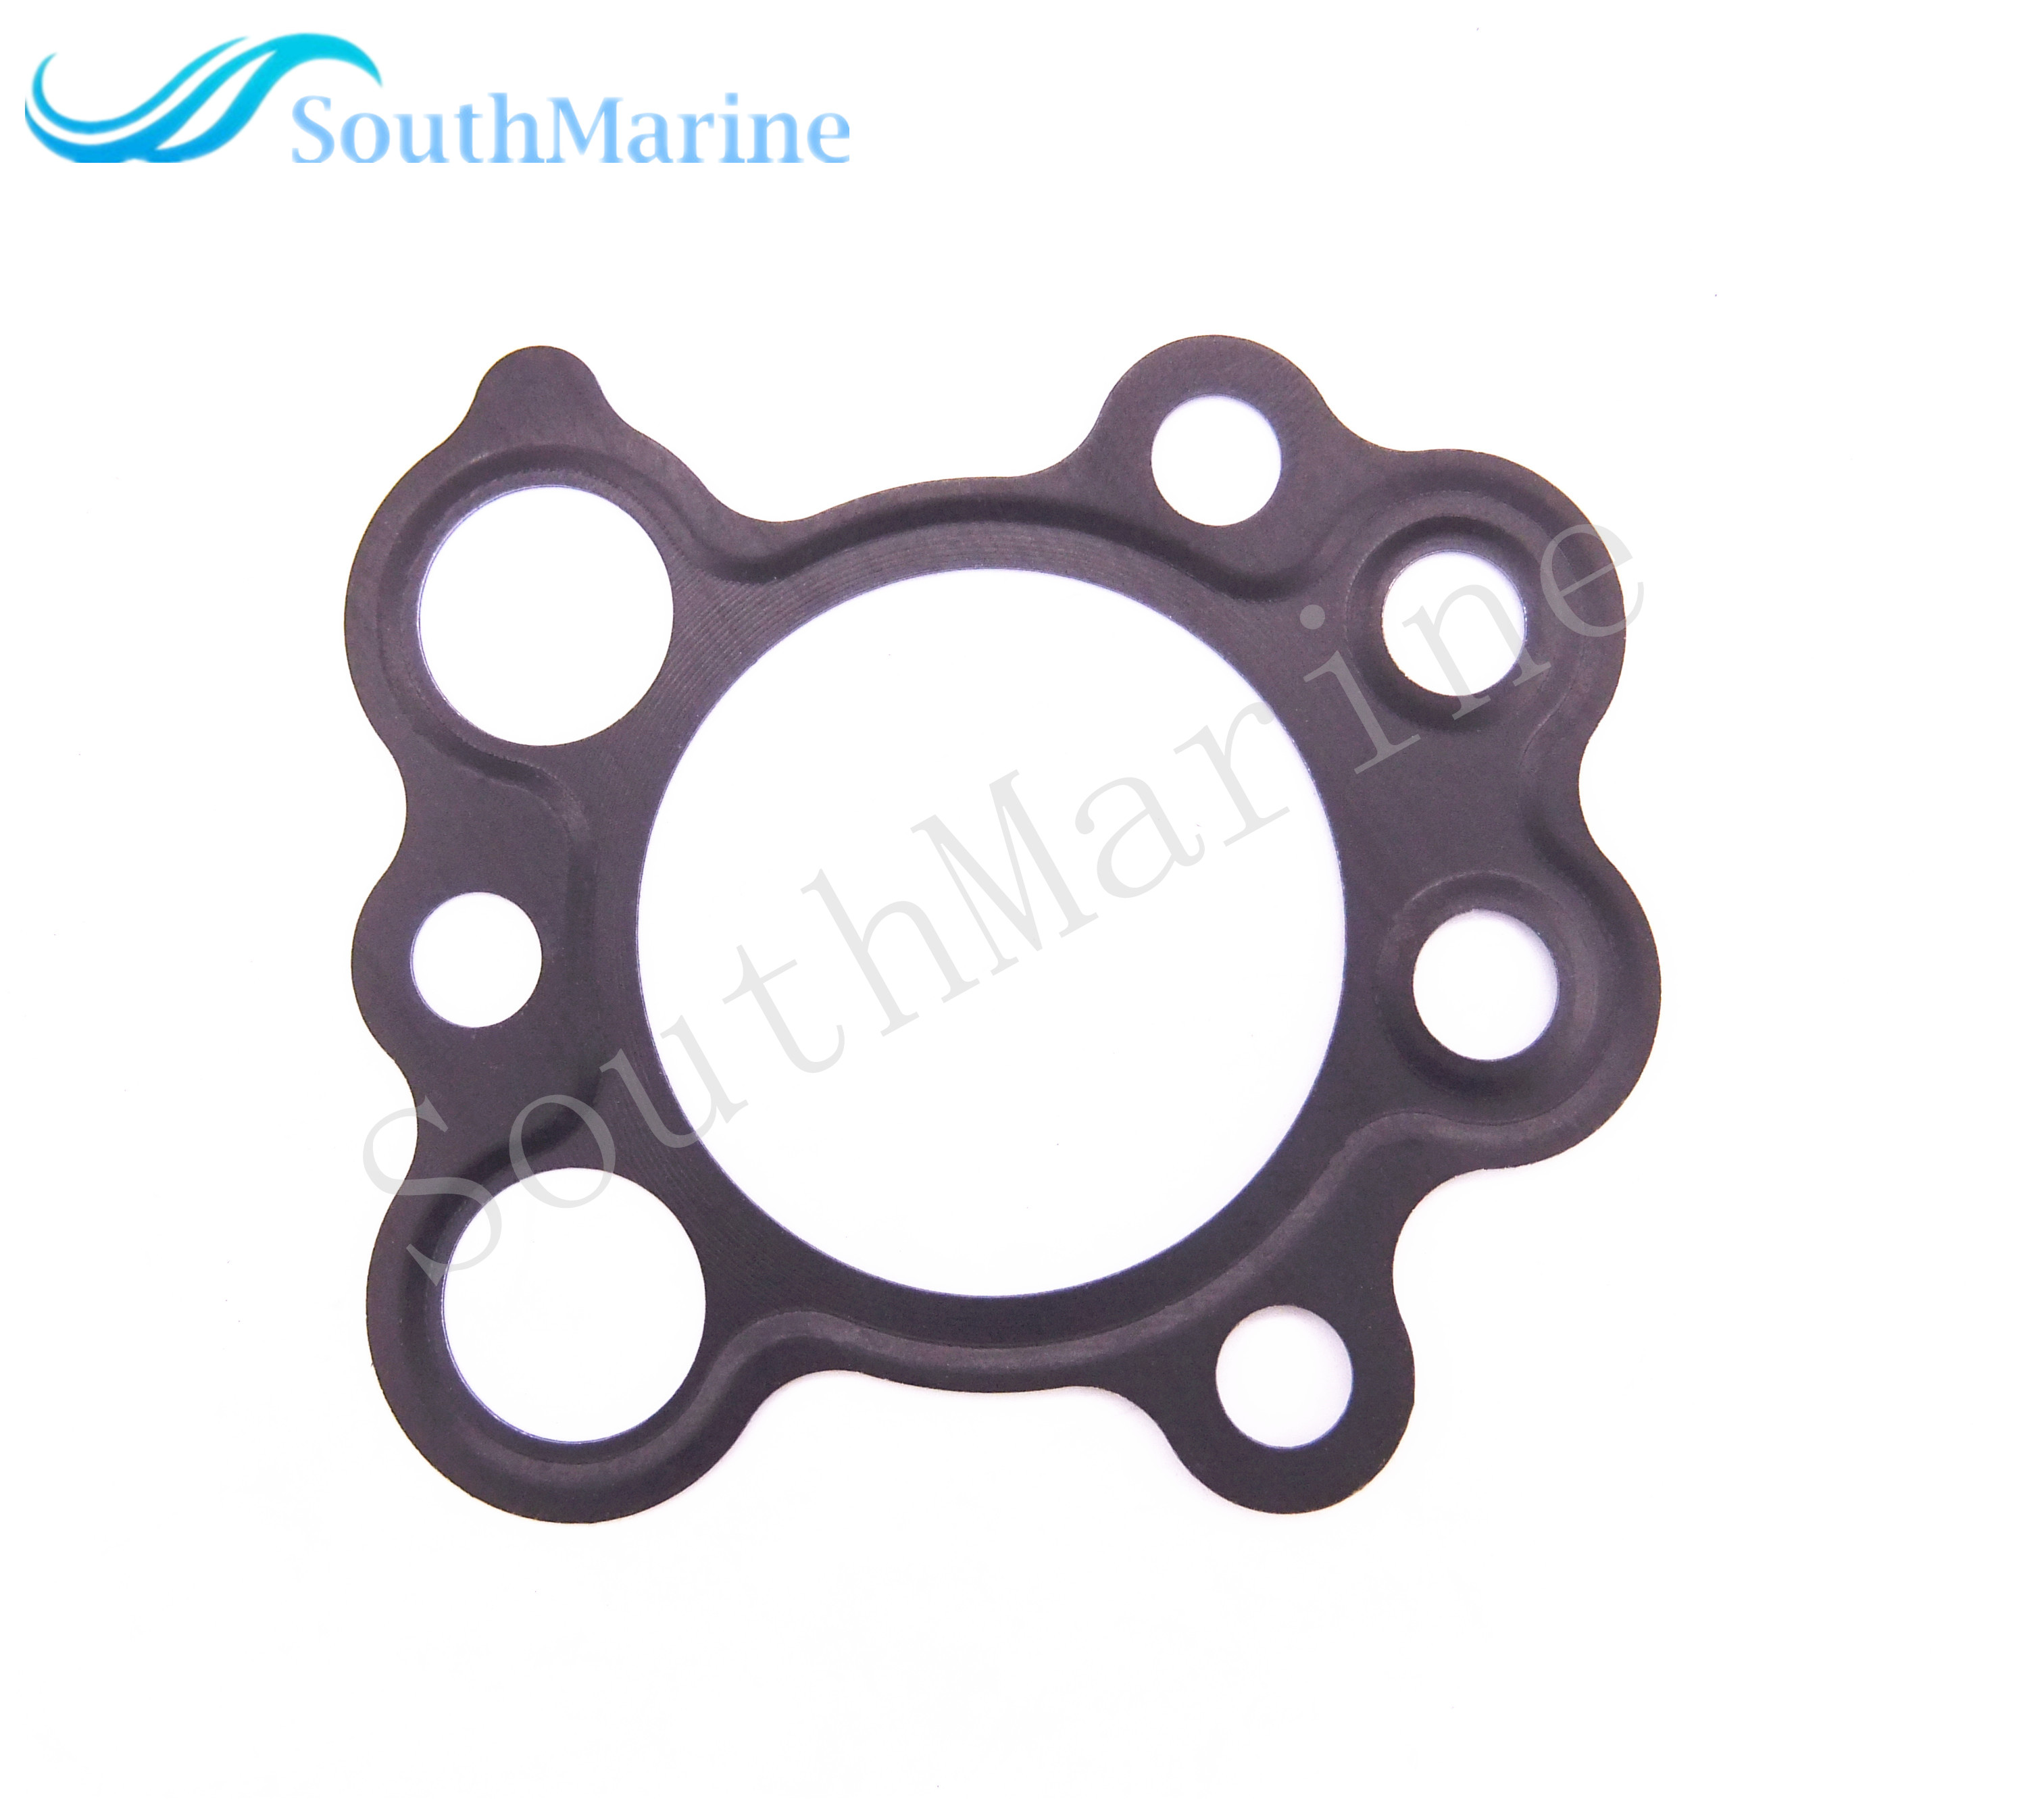 Outboard Engine F15-01.05.00.02 Oil Fuel Pump Cover Gasket for Hidea 4-Stroke F15 Boat Motor Free Shipping